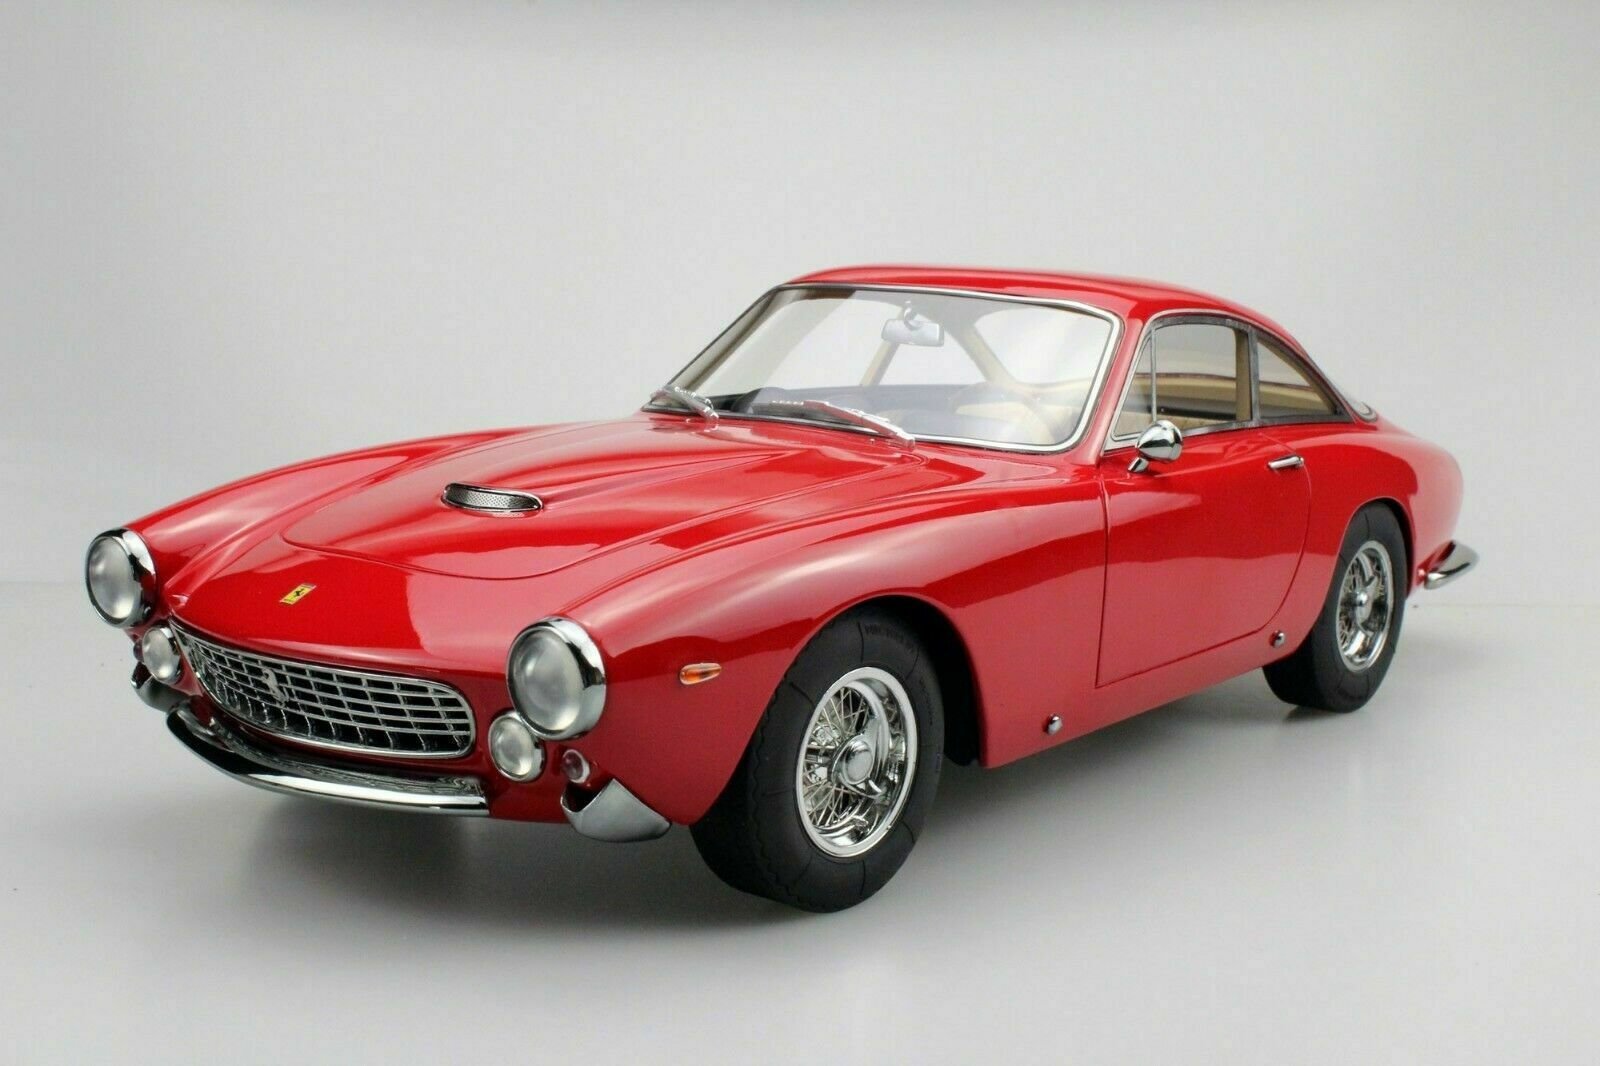 1 12 top marques tm12-12a ferrari 250 GT Lusso - 1962 rojo Limited EDT. 500 PCs.